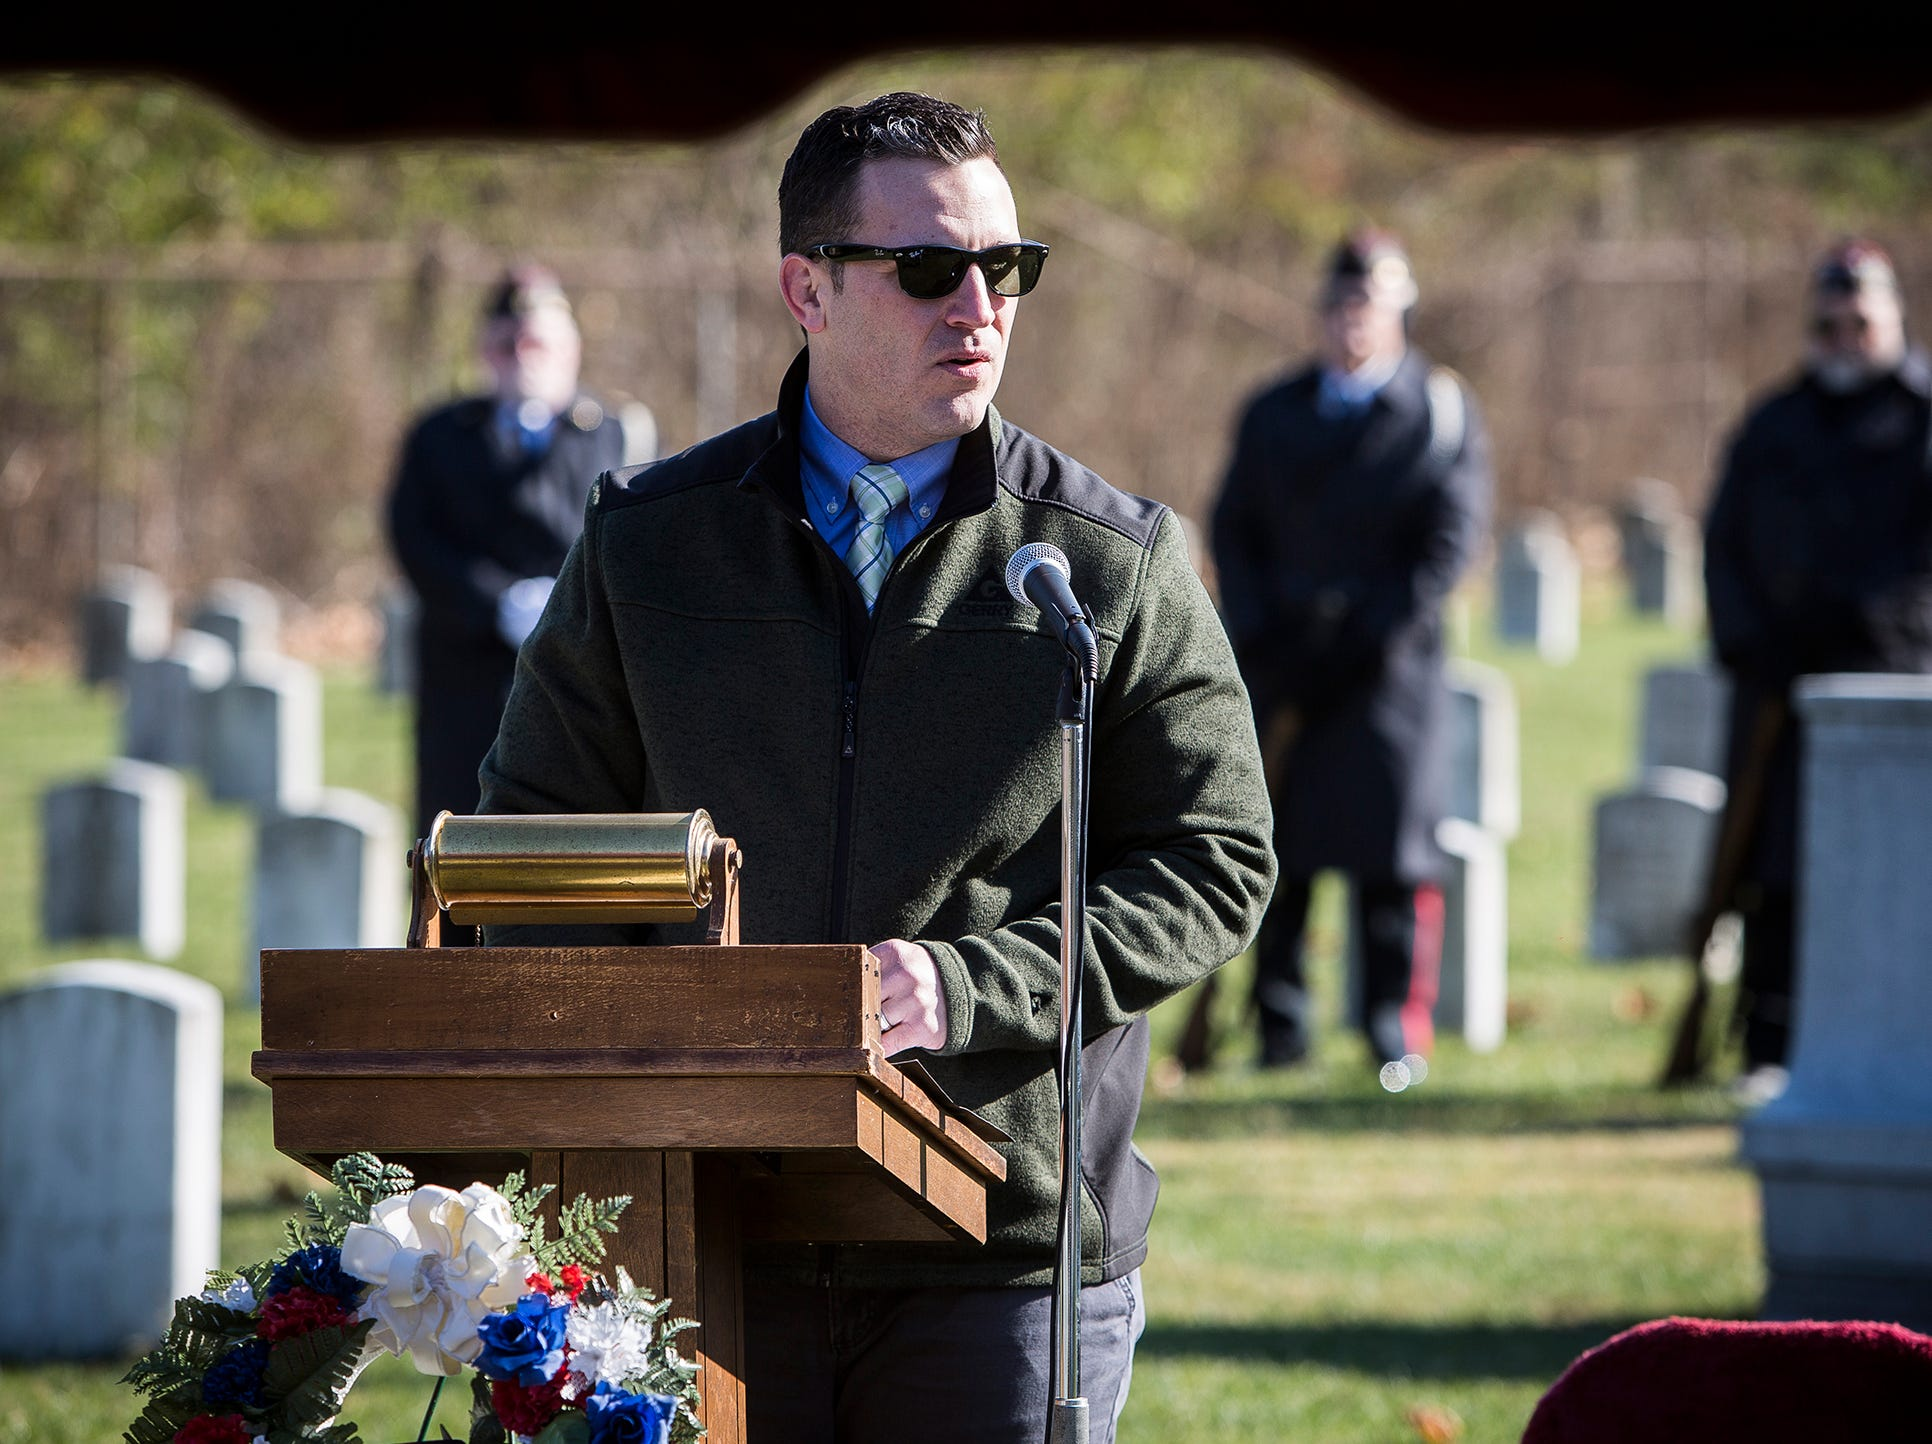 Veteran Zachary Tolle spoke during the Delaware County Veterans Day Service at Beech Grove Cemetery Sunday morning.